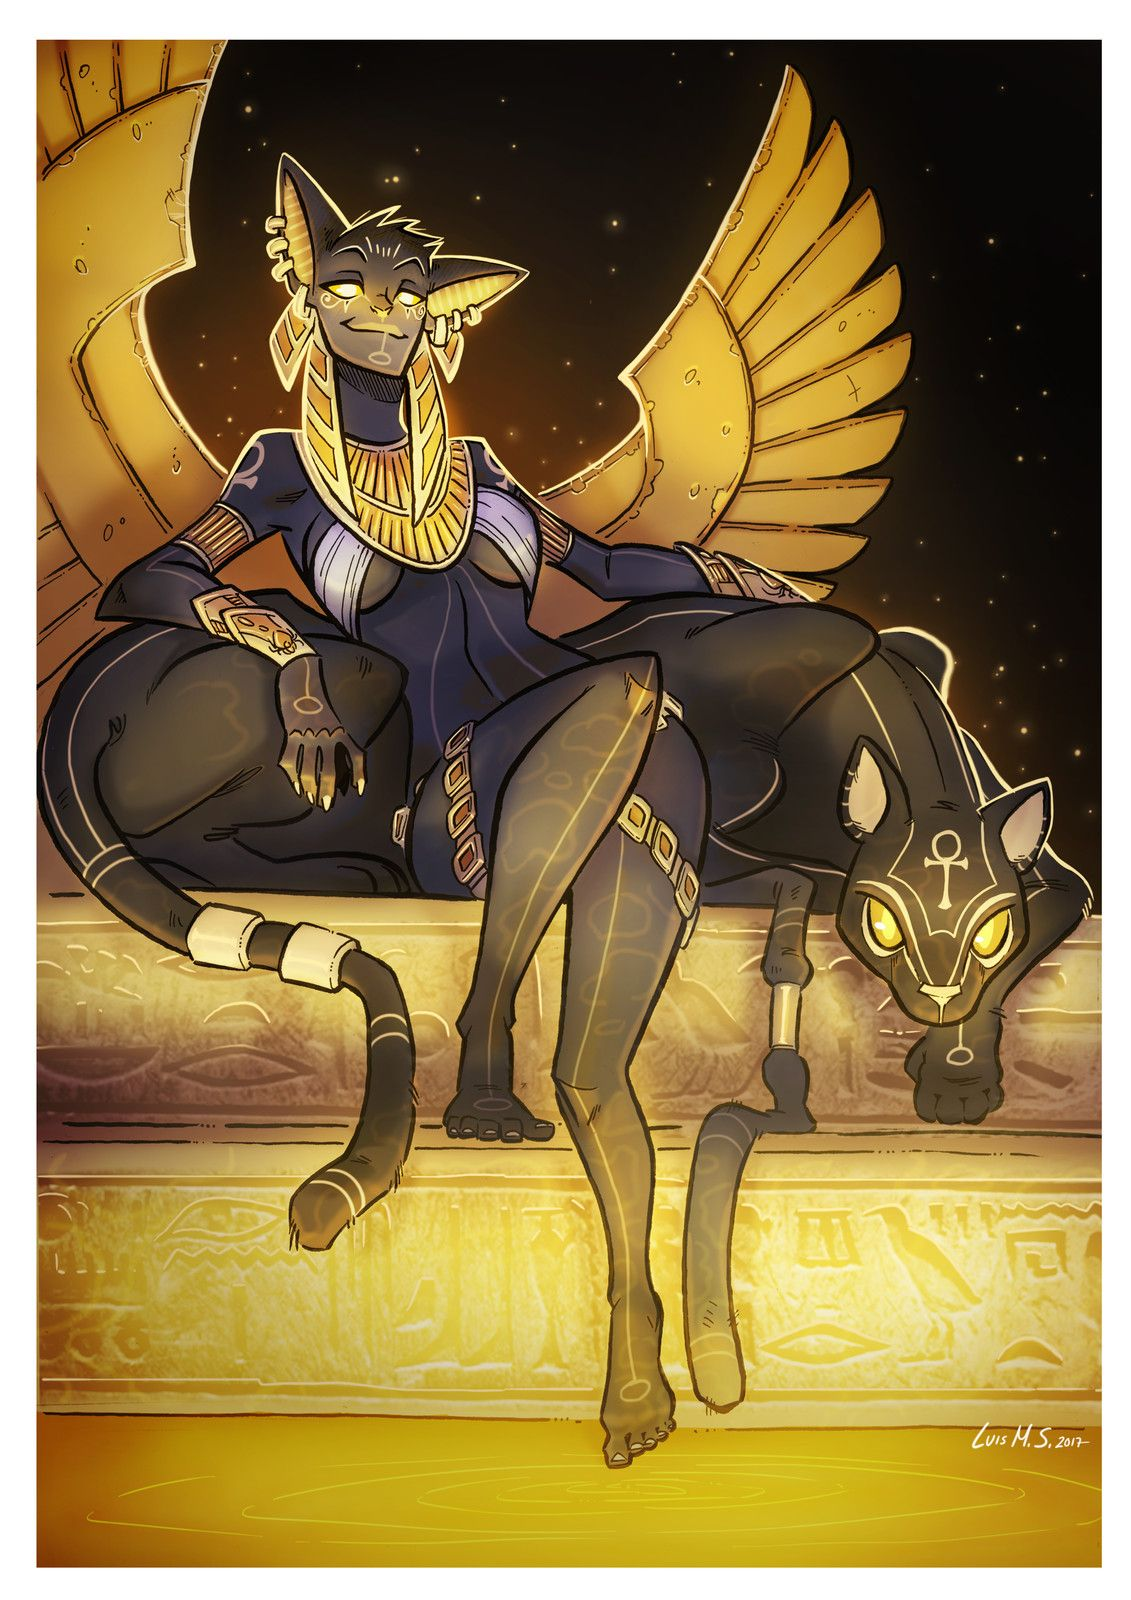 Bastet Otros Pinterest Characters Character design and